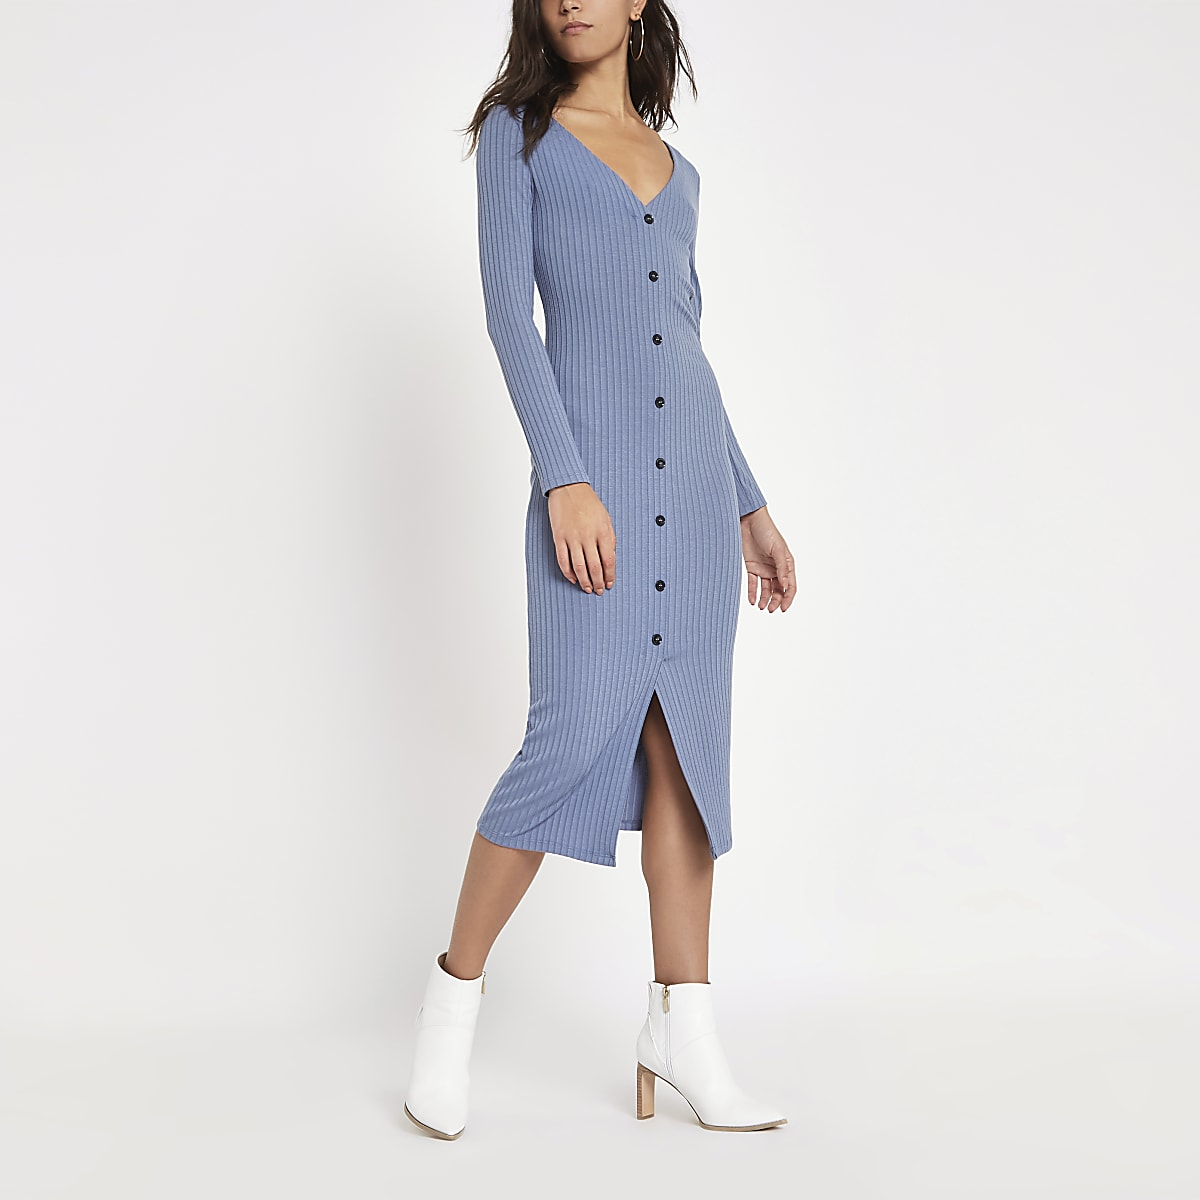 Light blue ribbed button front bodycon dress